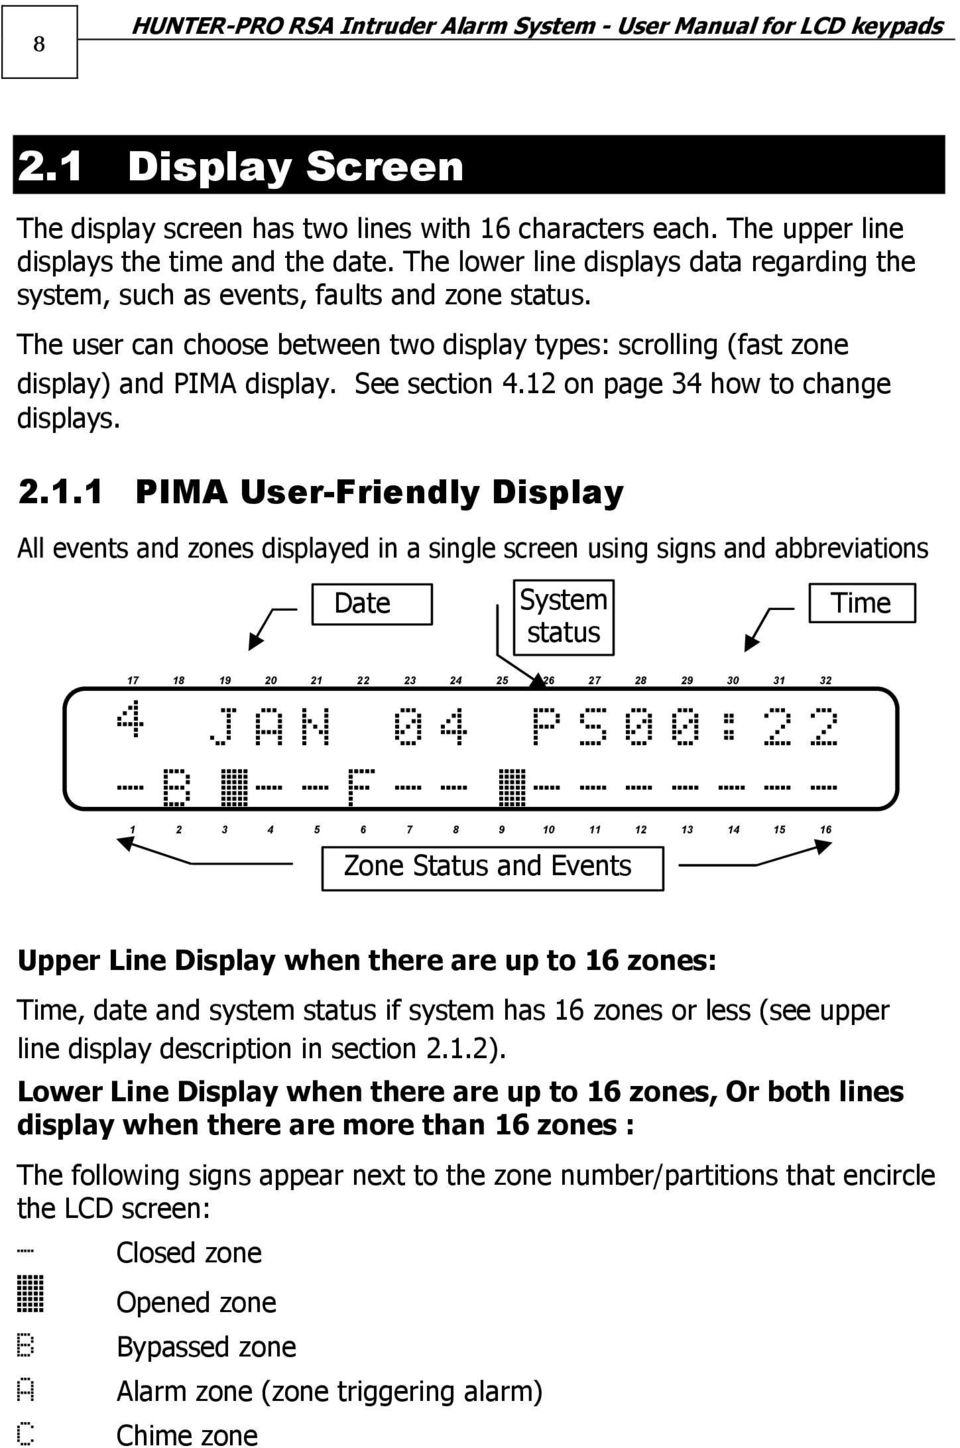 12 on page 34 how to change displays. 2.1.1 PIMA User-Friendly Display All events and zones displayed in a single screen using signs and abbreviations Date System status Time 17 18 19 20 21 22 23 24